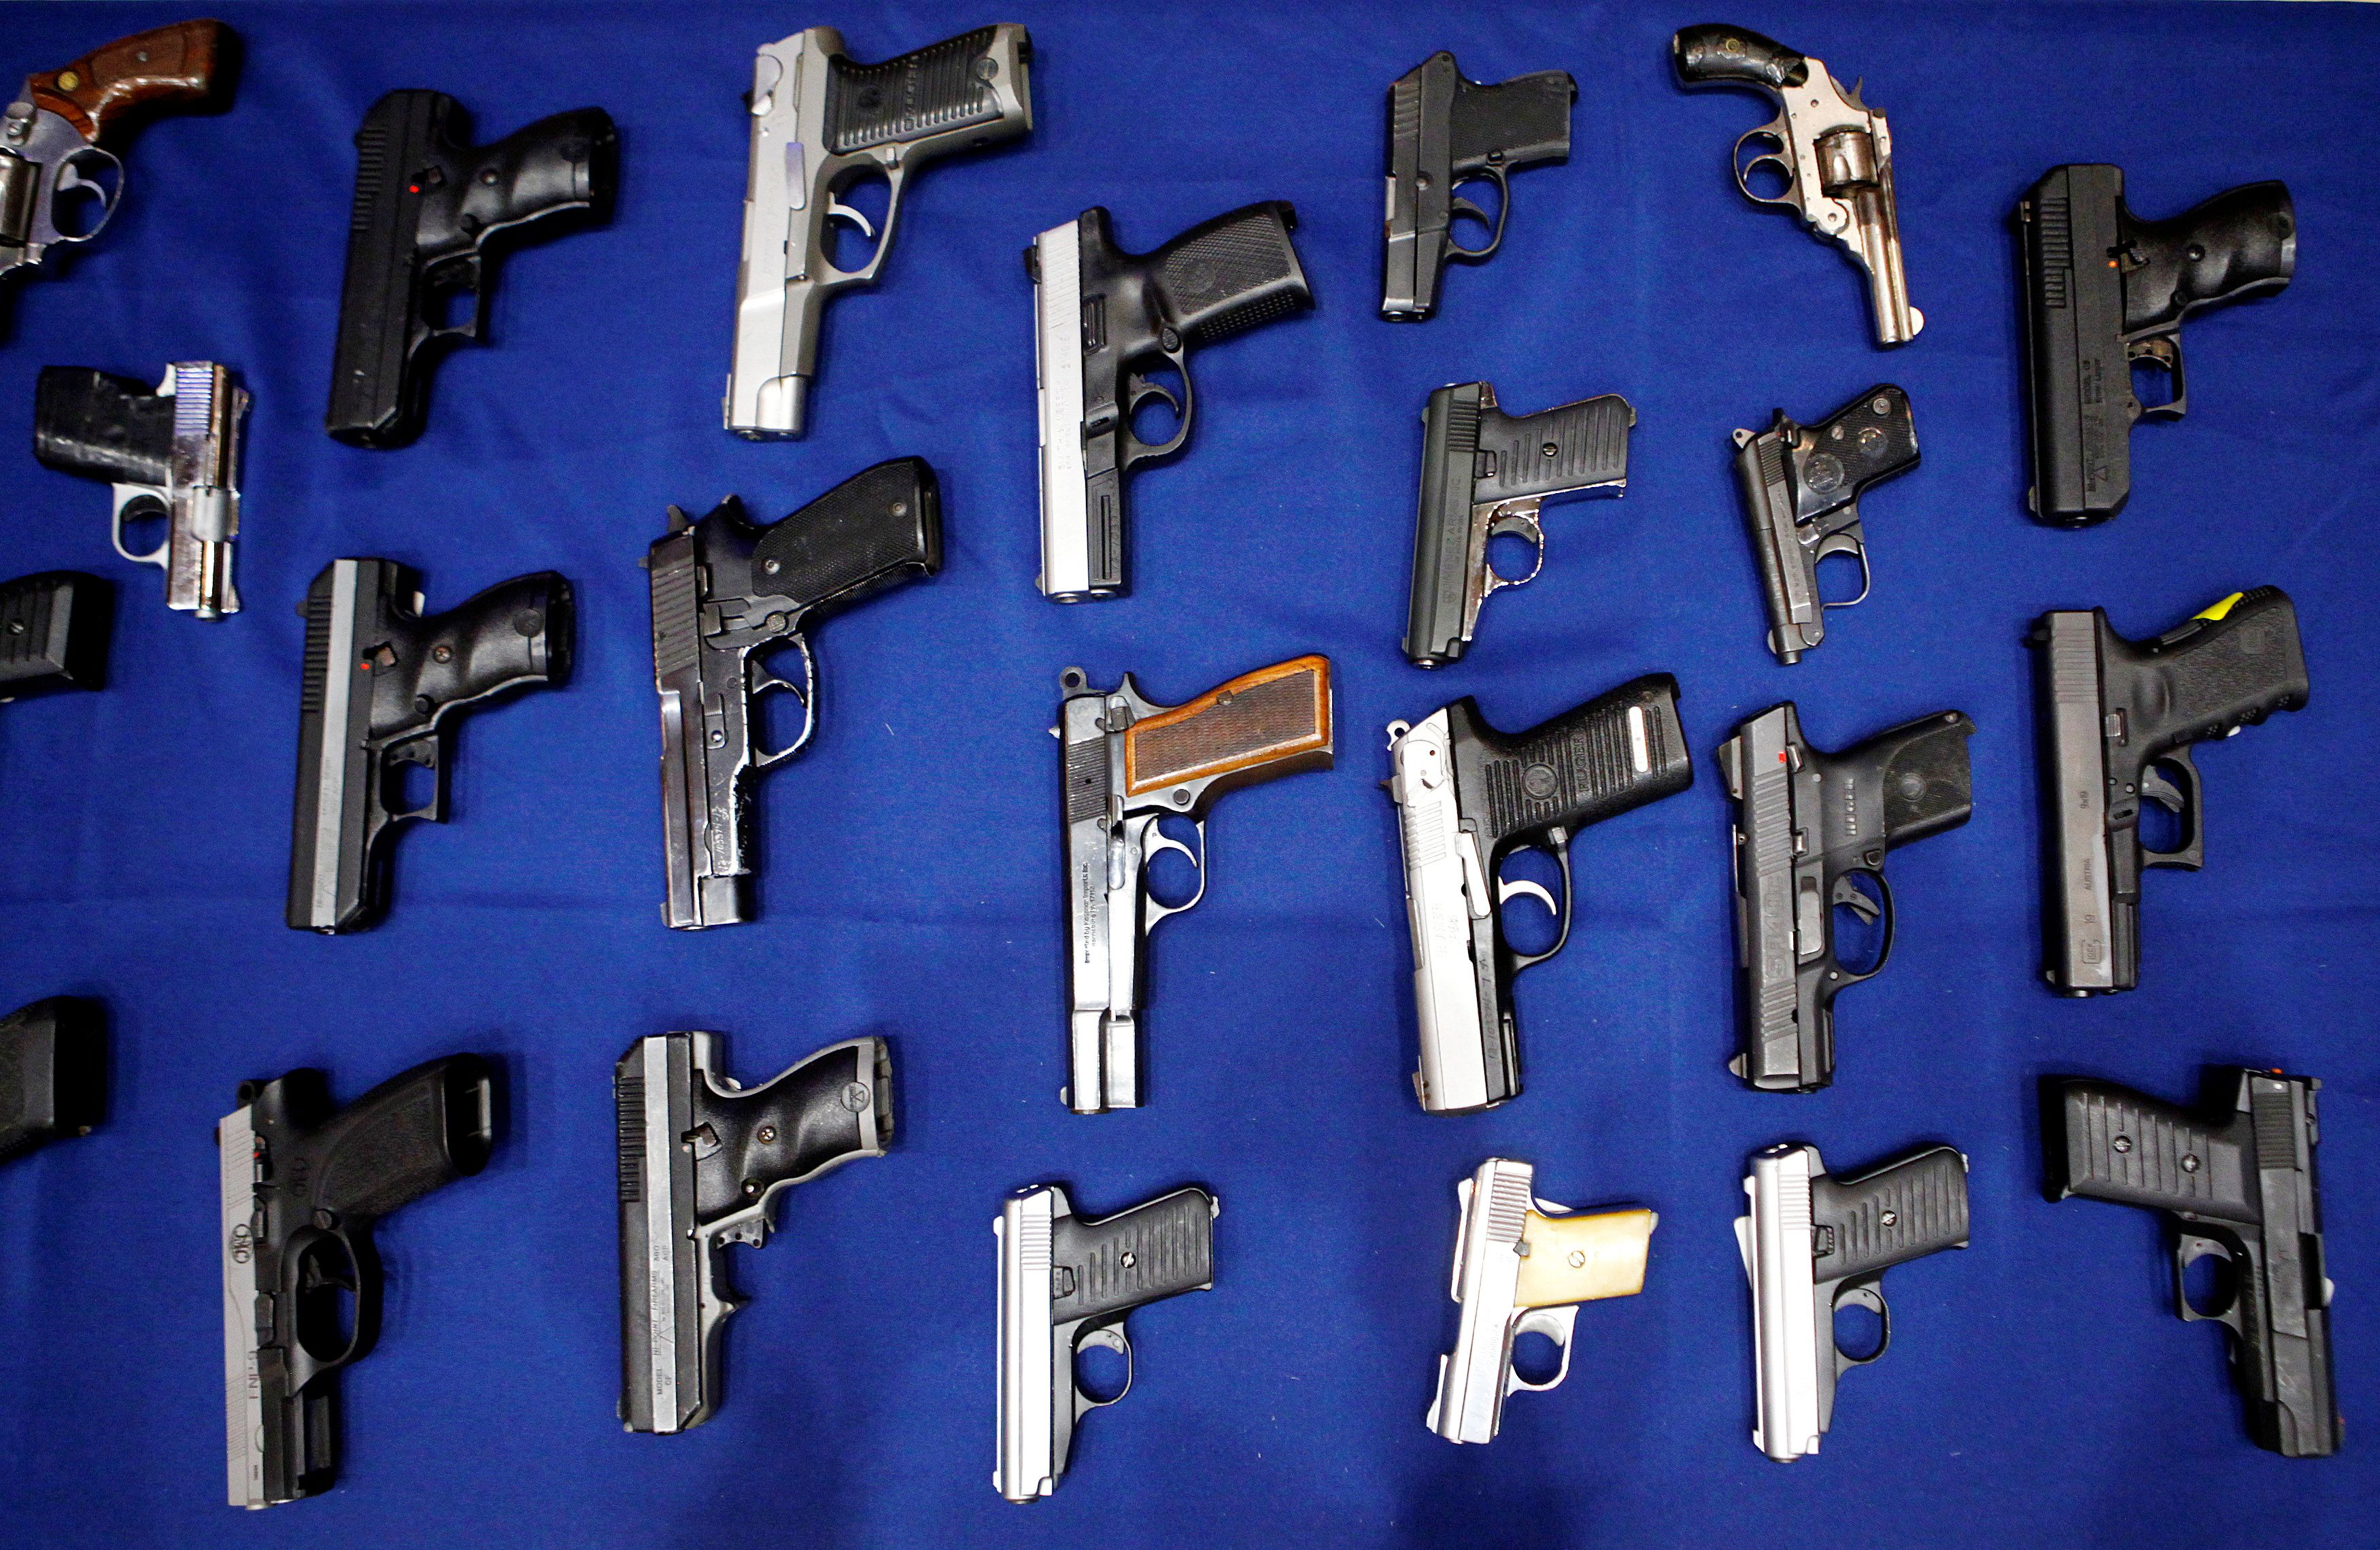 Seized handguns are pictured at the police headquarters in New York, New York August 19, 2013.  REUTERS/Eric Thayer/File Photo/File Photo